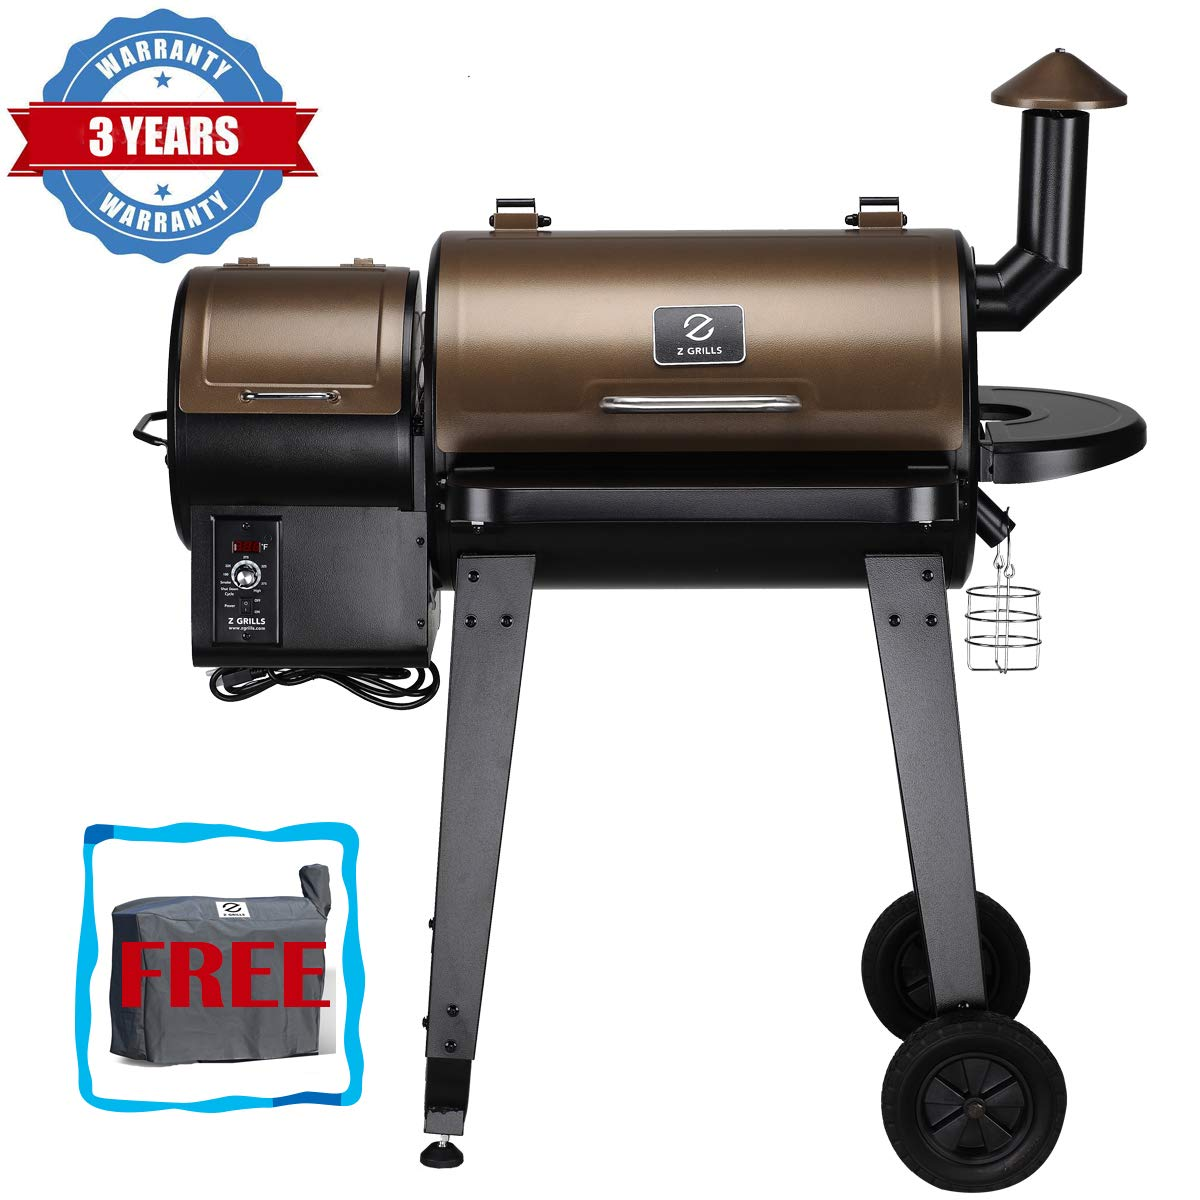 Z GRILLS Wood Pellet Grill and Smoker Ourdoor with Update Pid Controller 8-in-1 Outdoor Smoker(Cover Included) by Z GRILLS